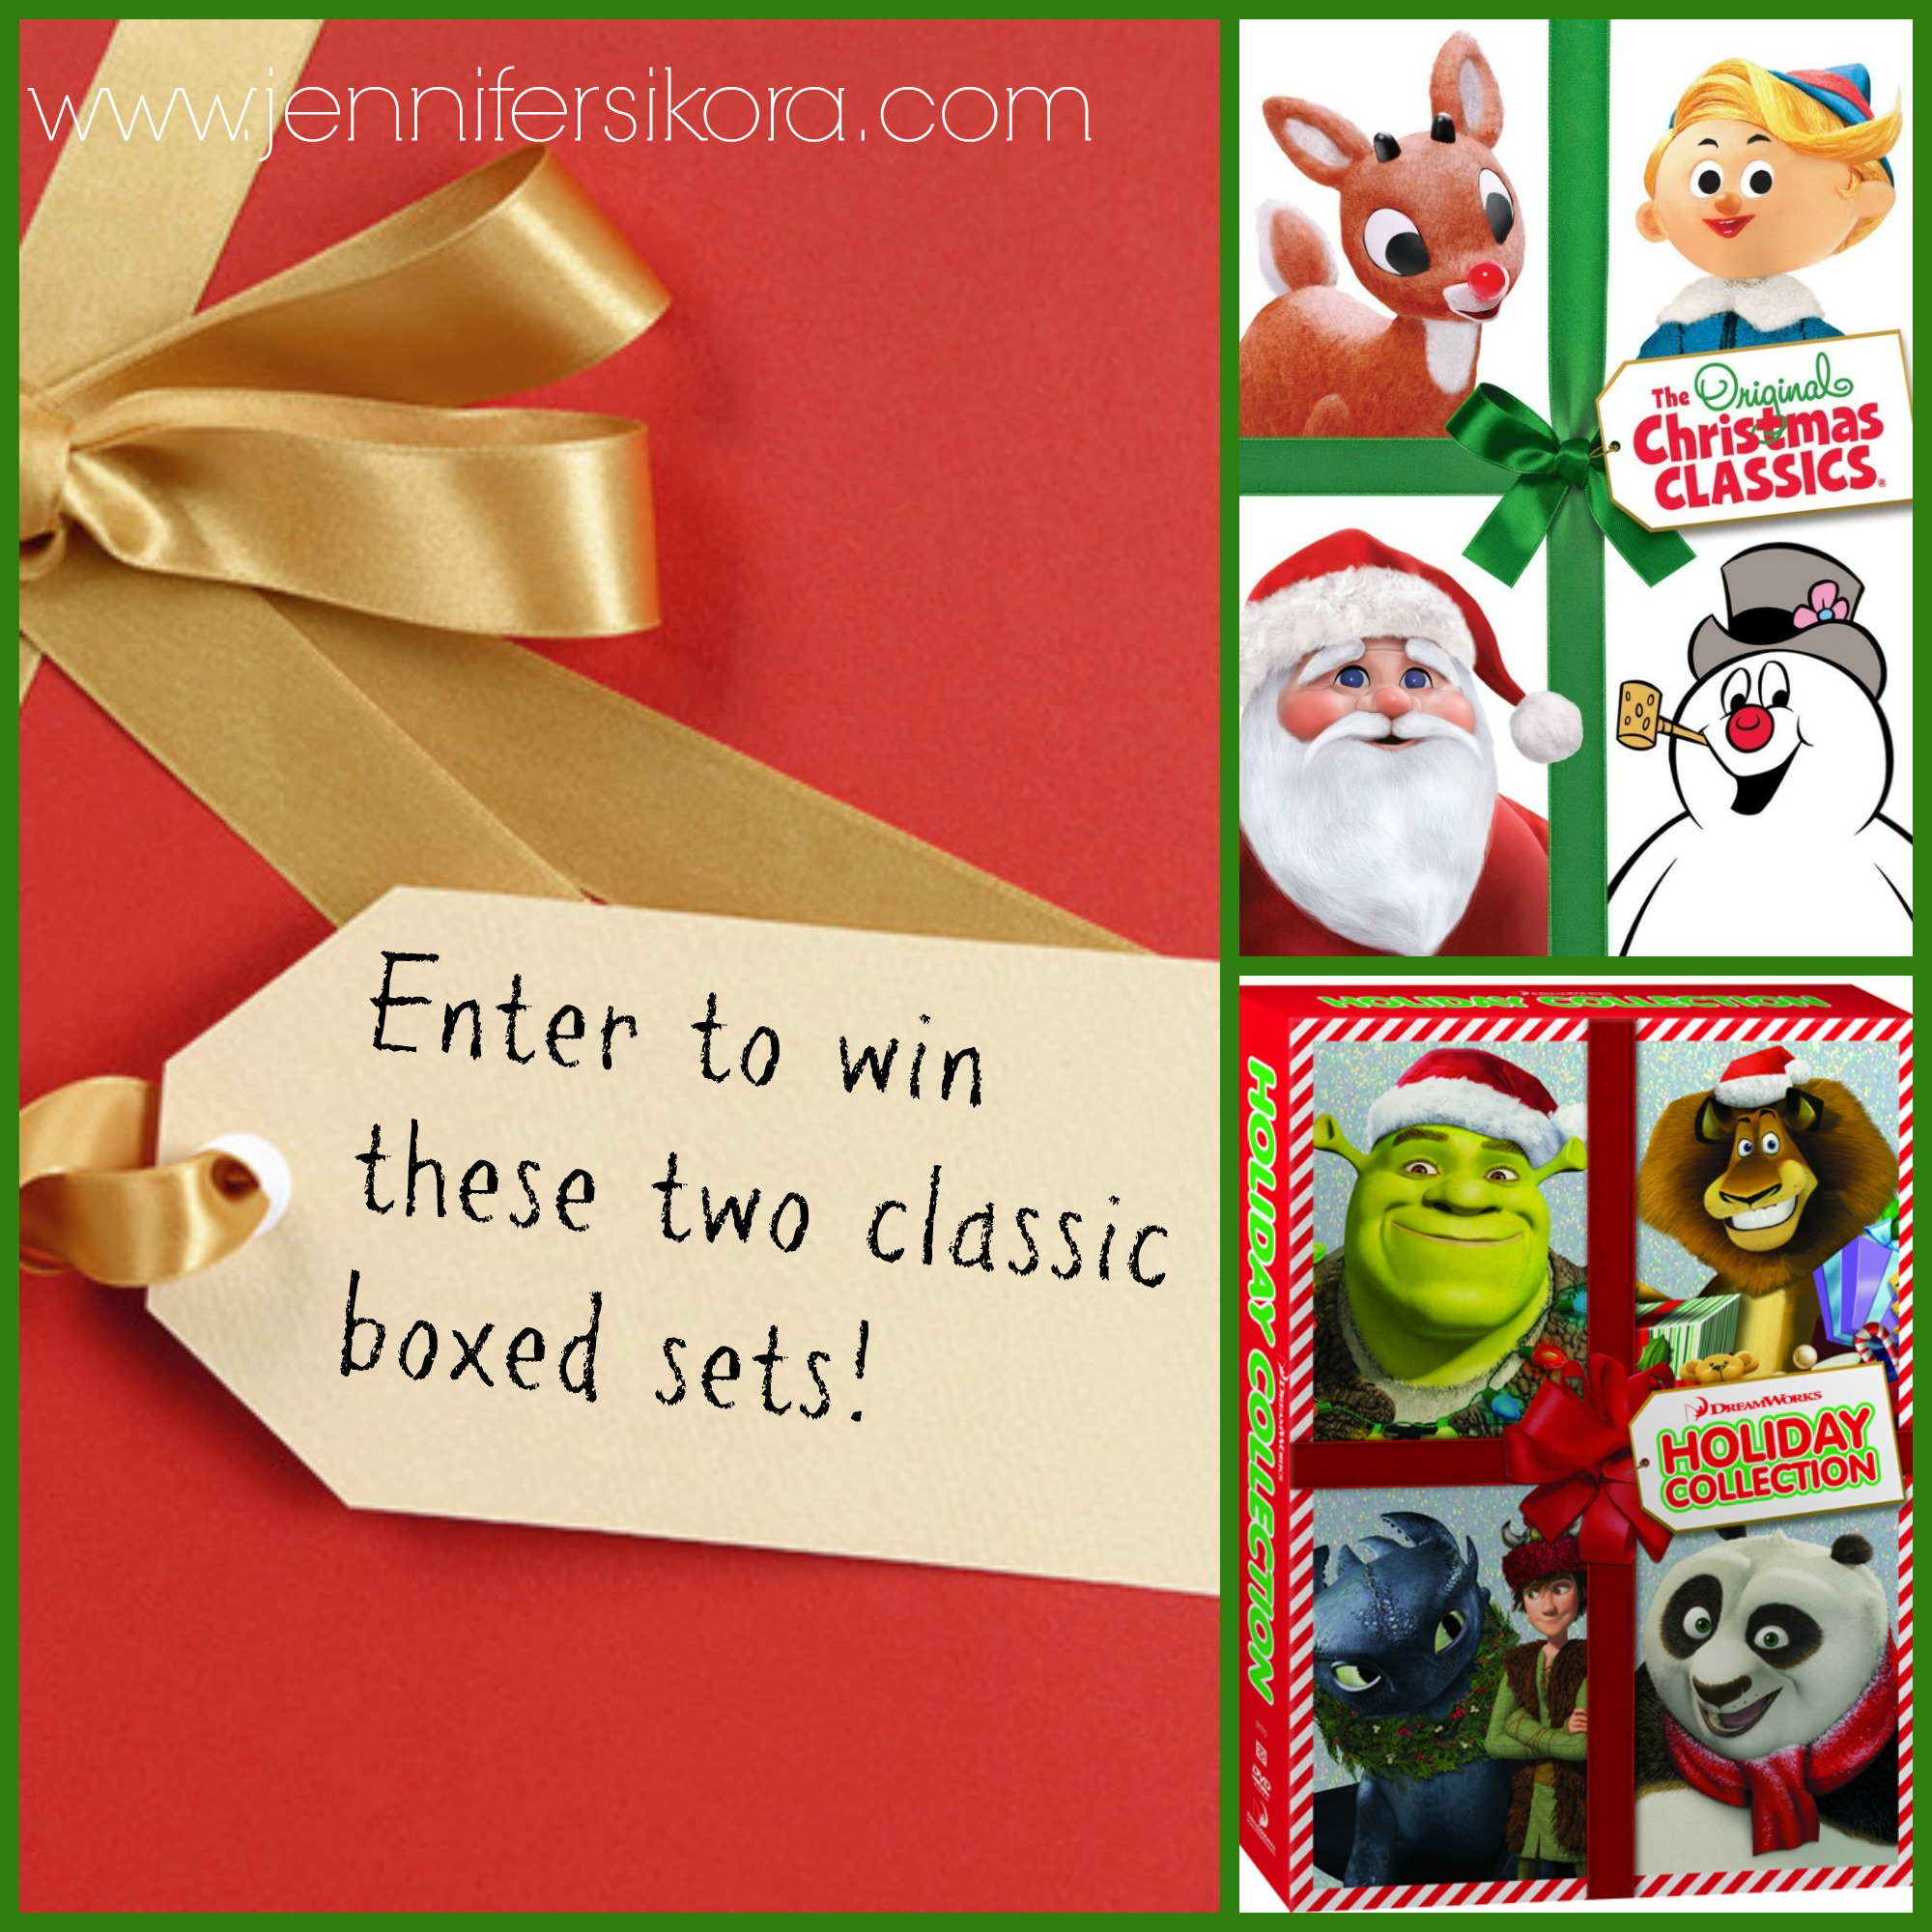 Christmas Classics and Dreamworks Christmas Movie Giveaway